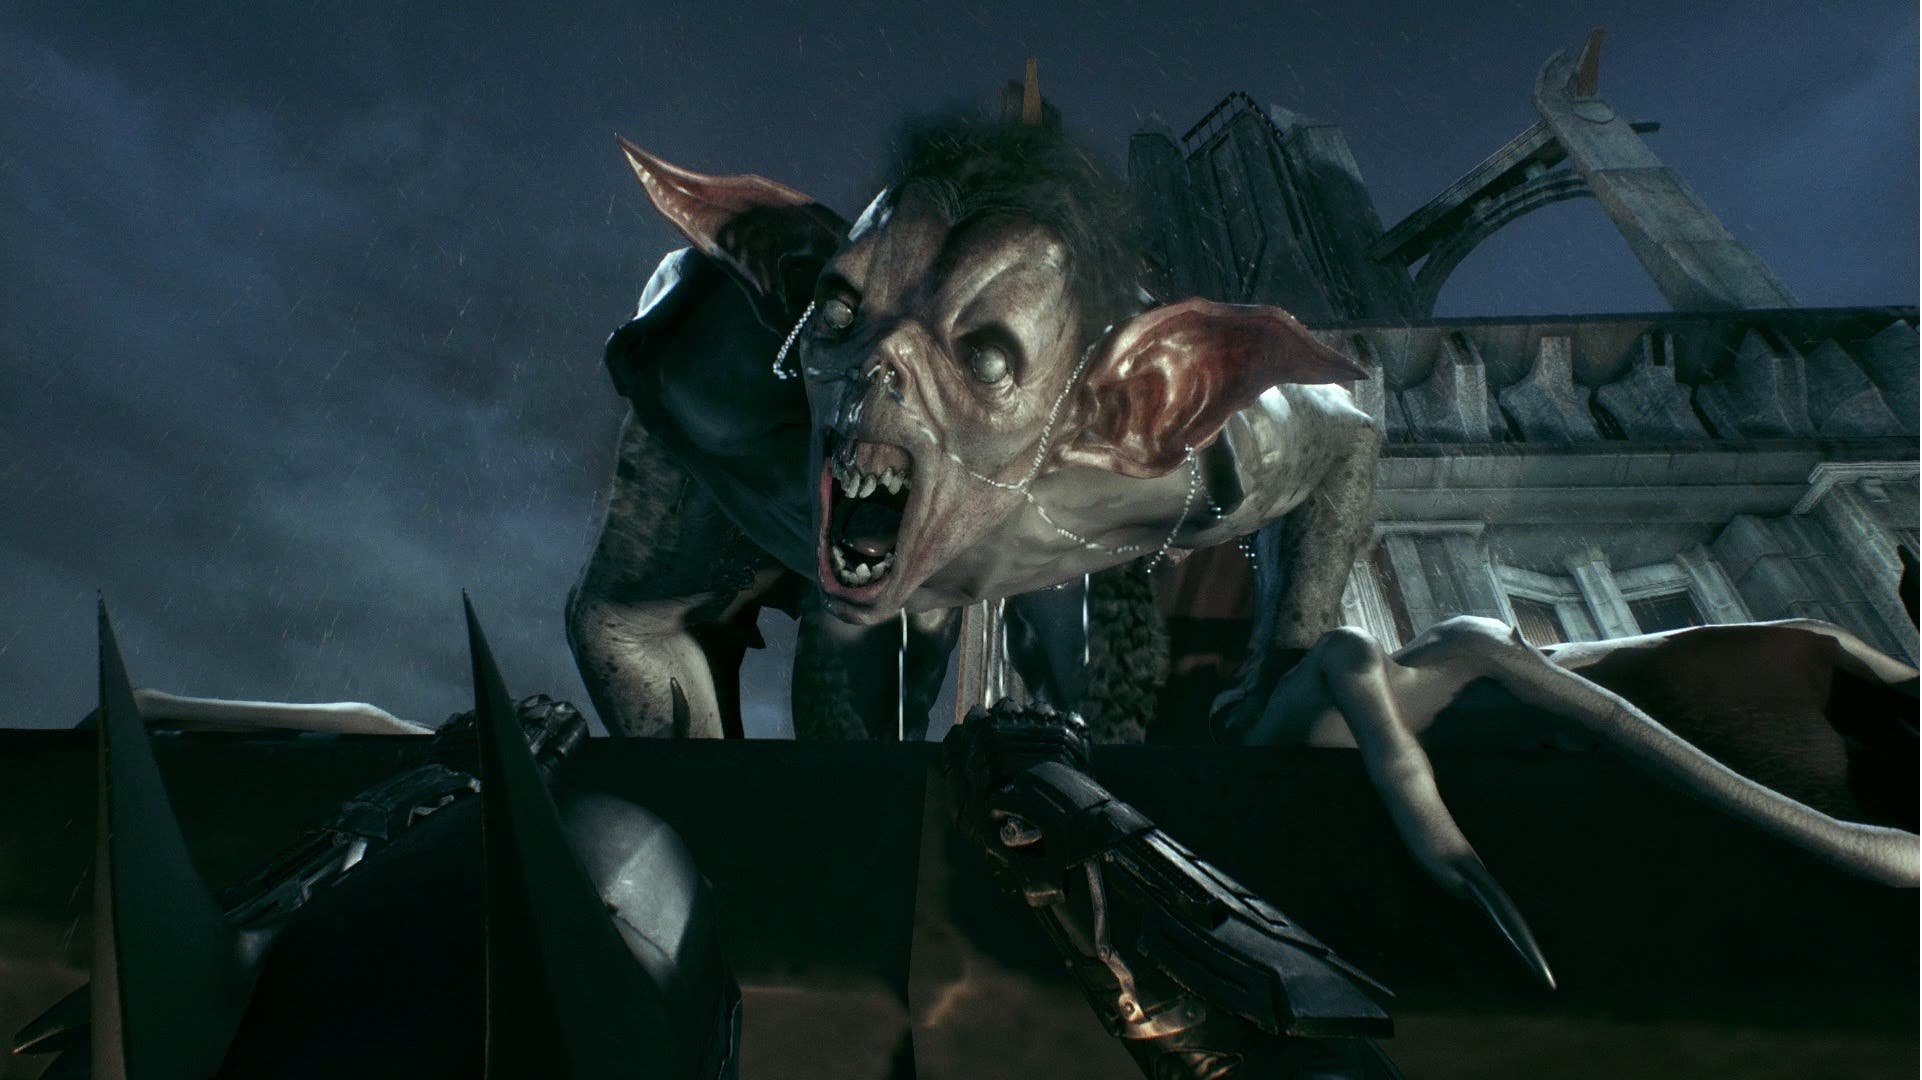 Easter Egg en Batman Arkham Knight relacionado con Halloween